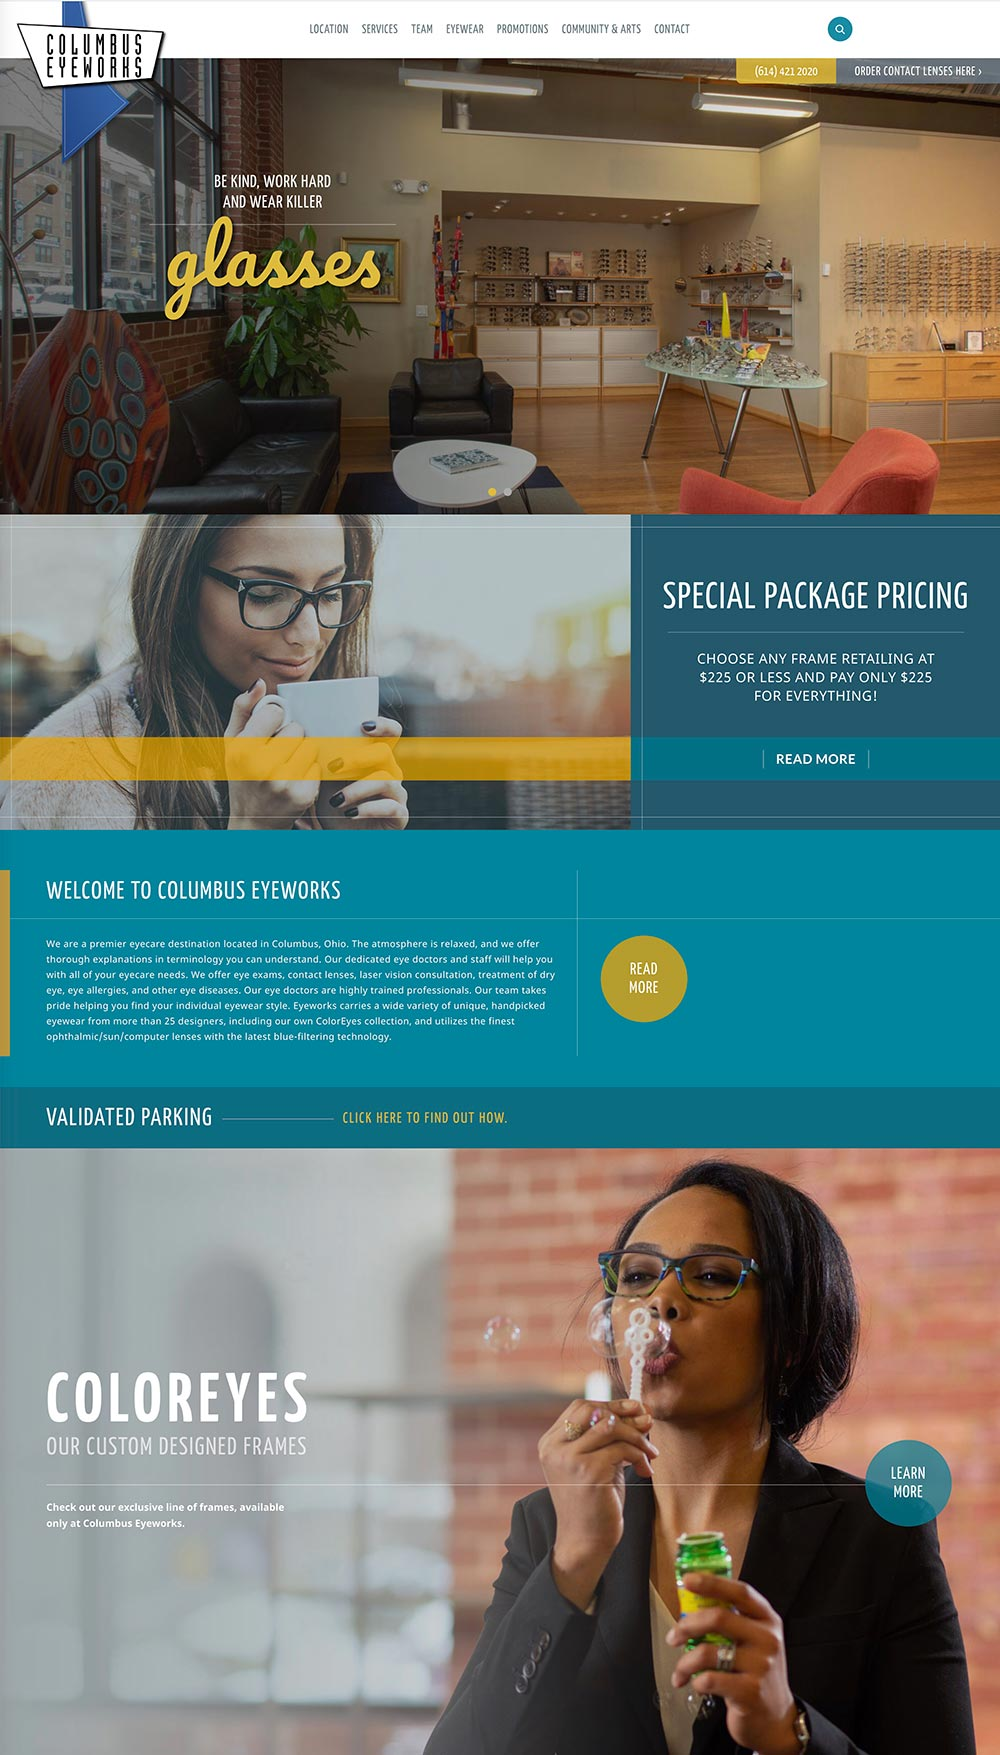 Columbus Eyeworks homepage by Columbus website design firm Sevell